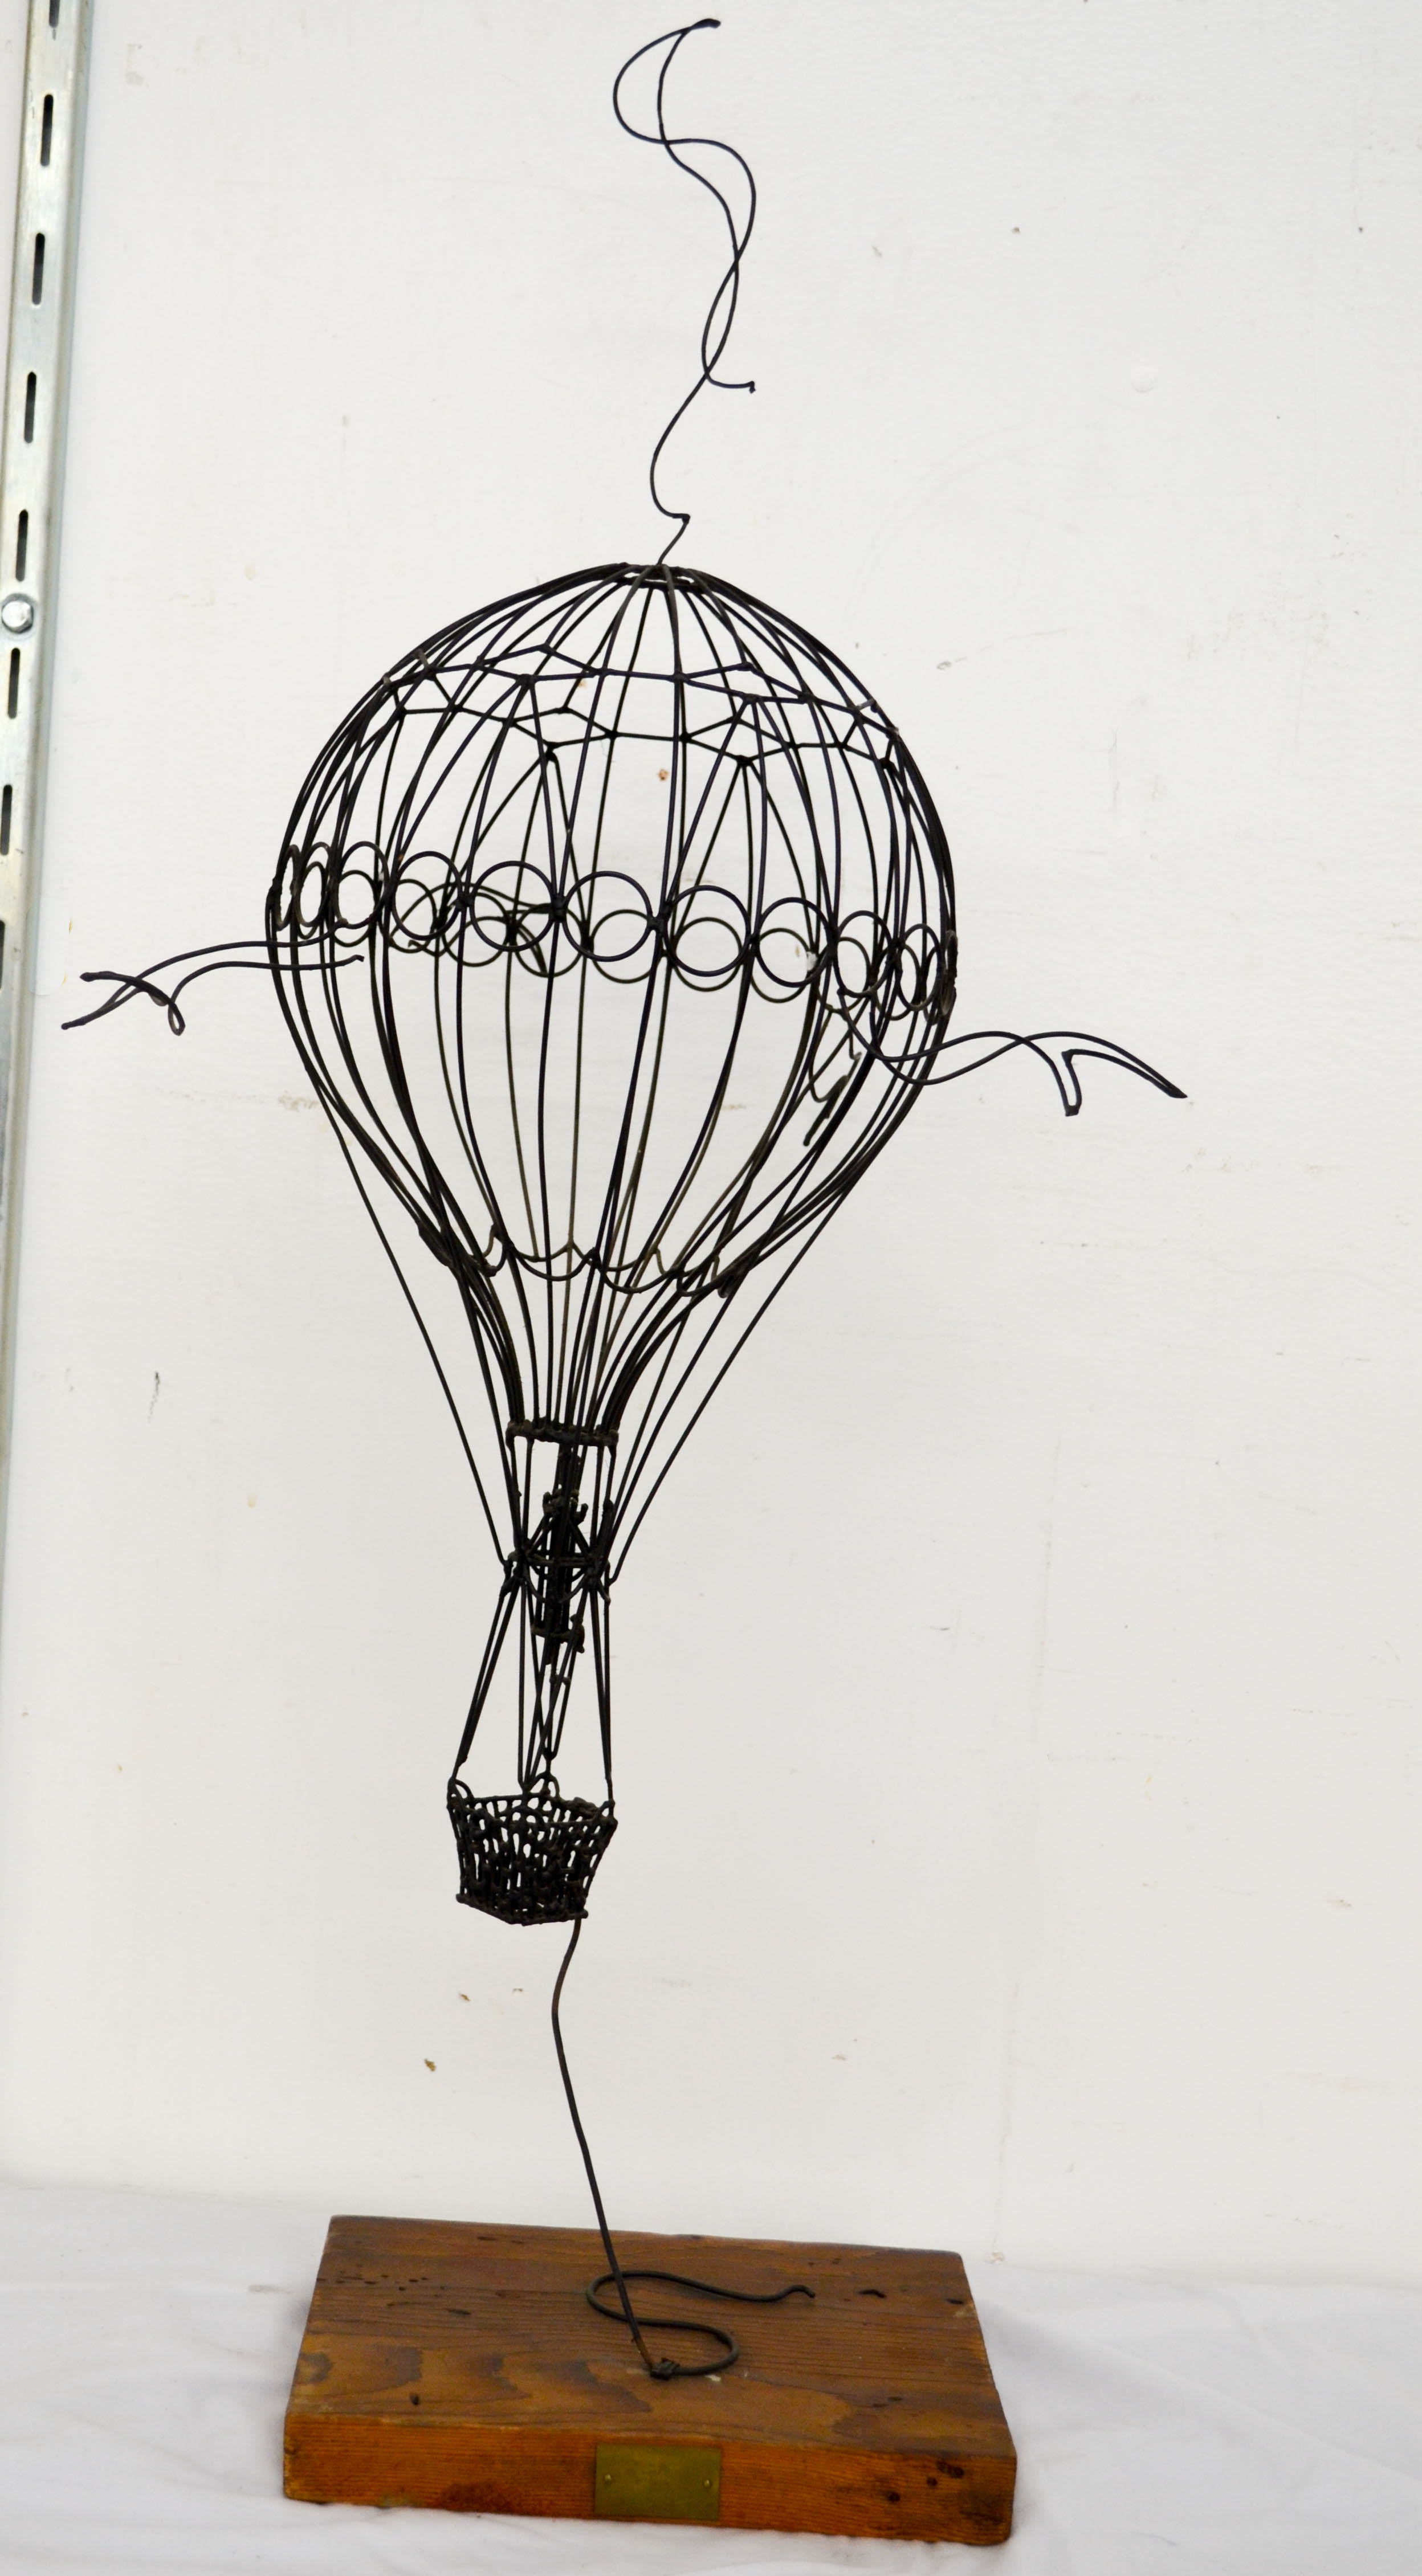 98 Rick Gregg Hot Air Ballon Art